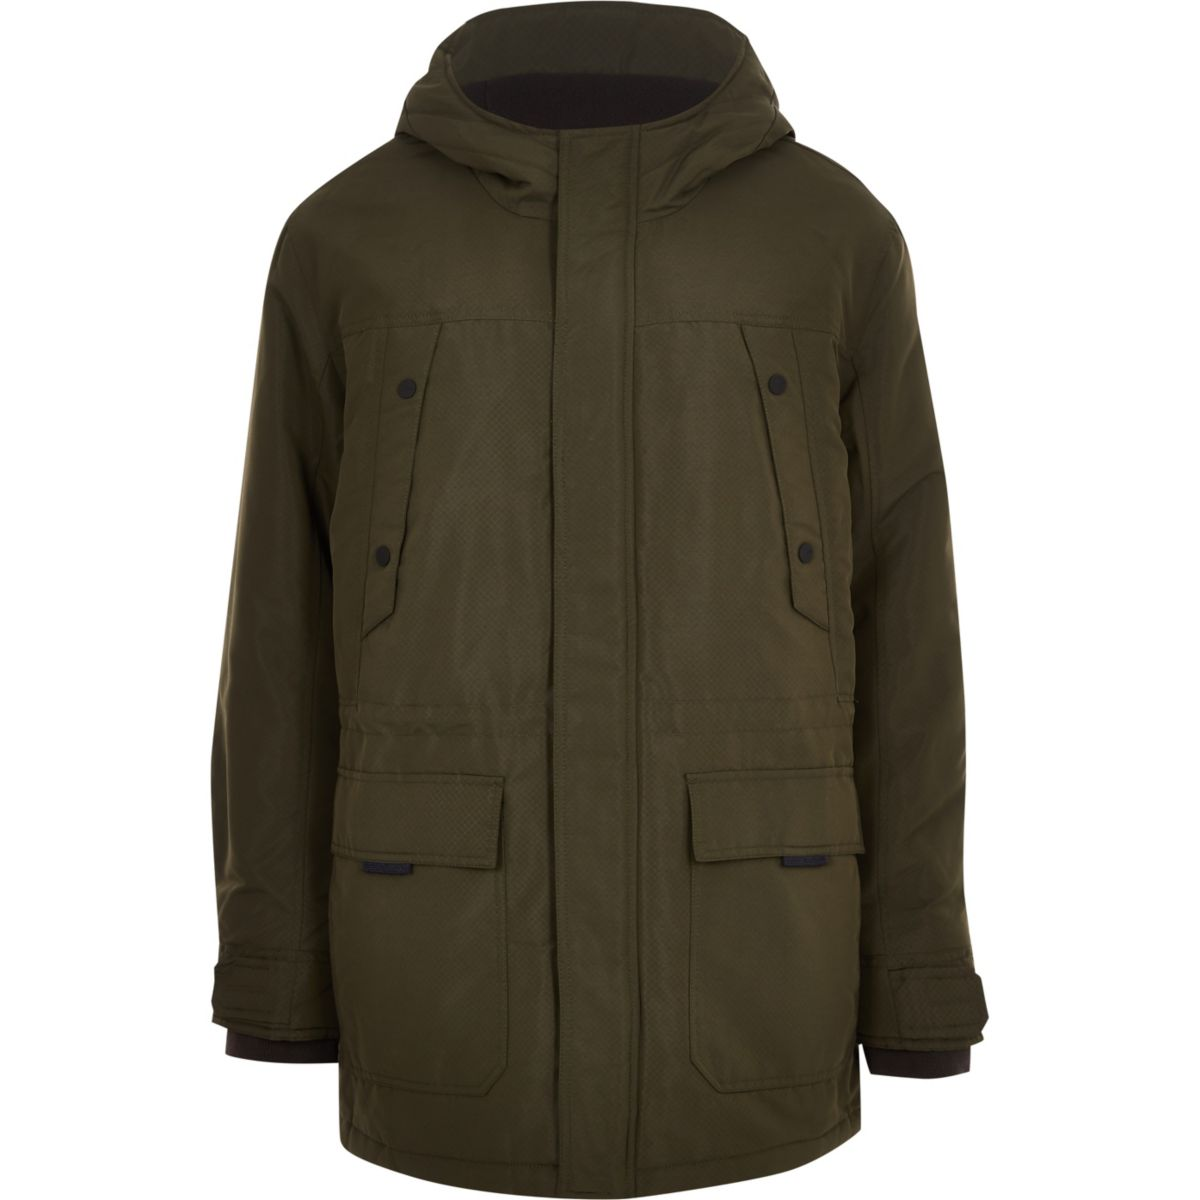 Only & Sons Big & Tall green padded parka